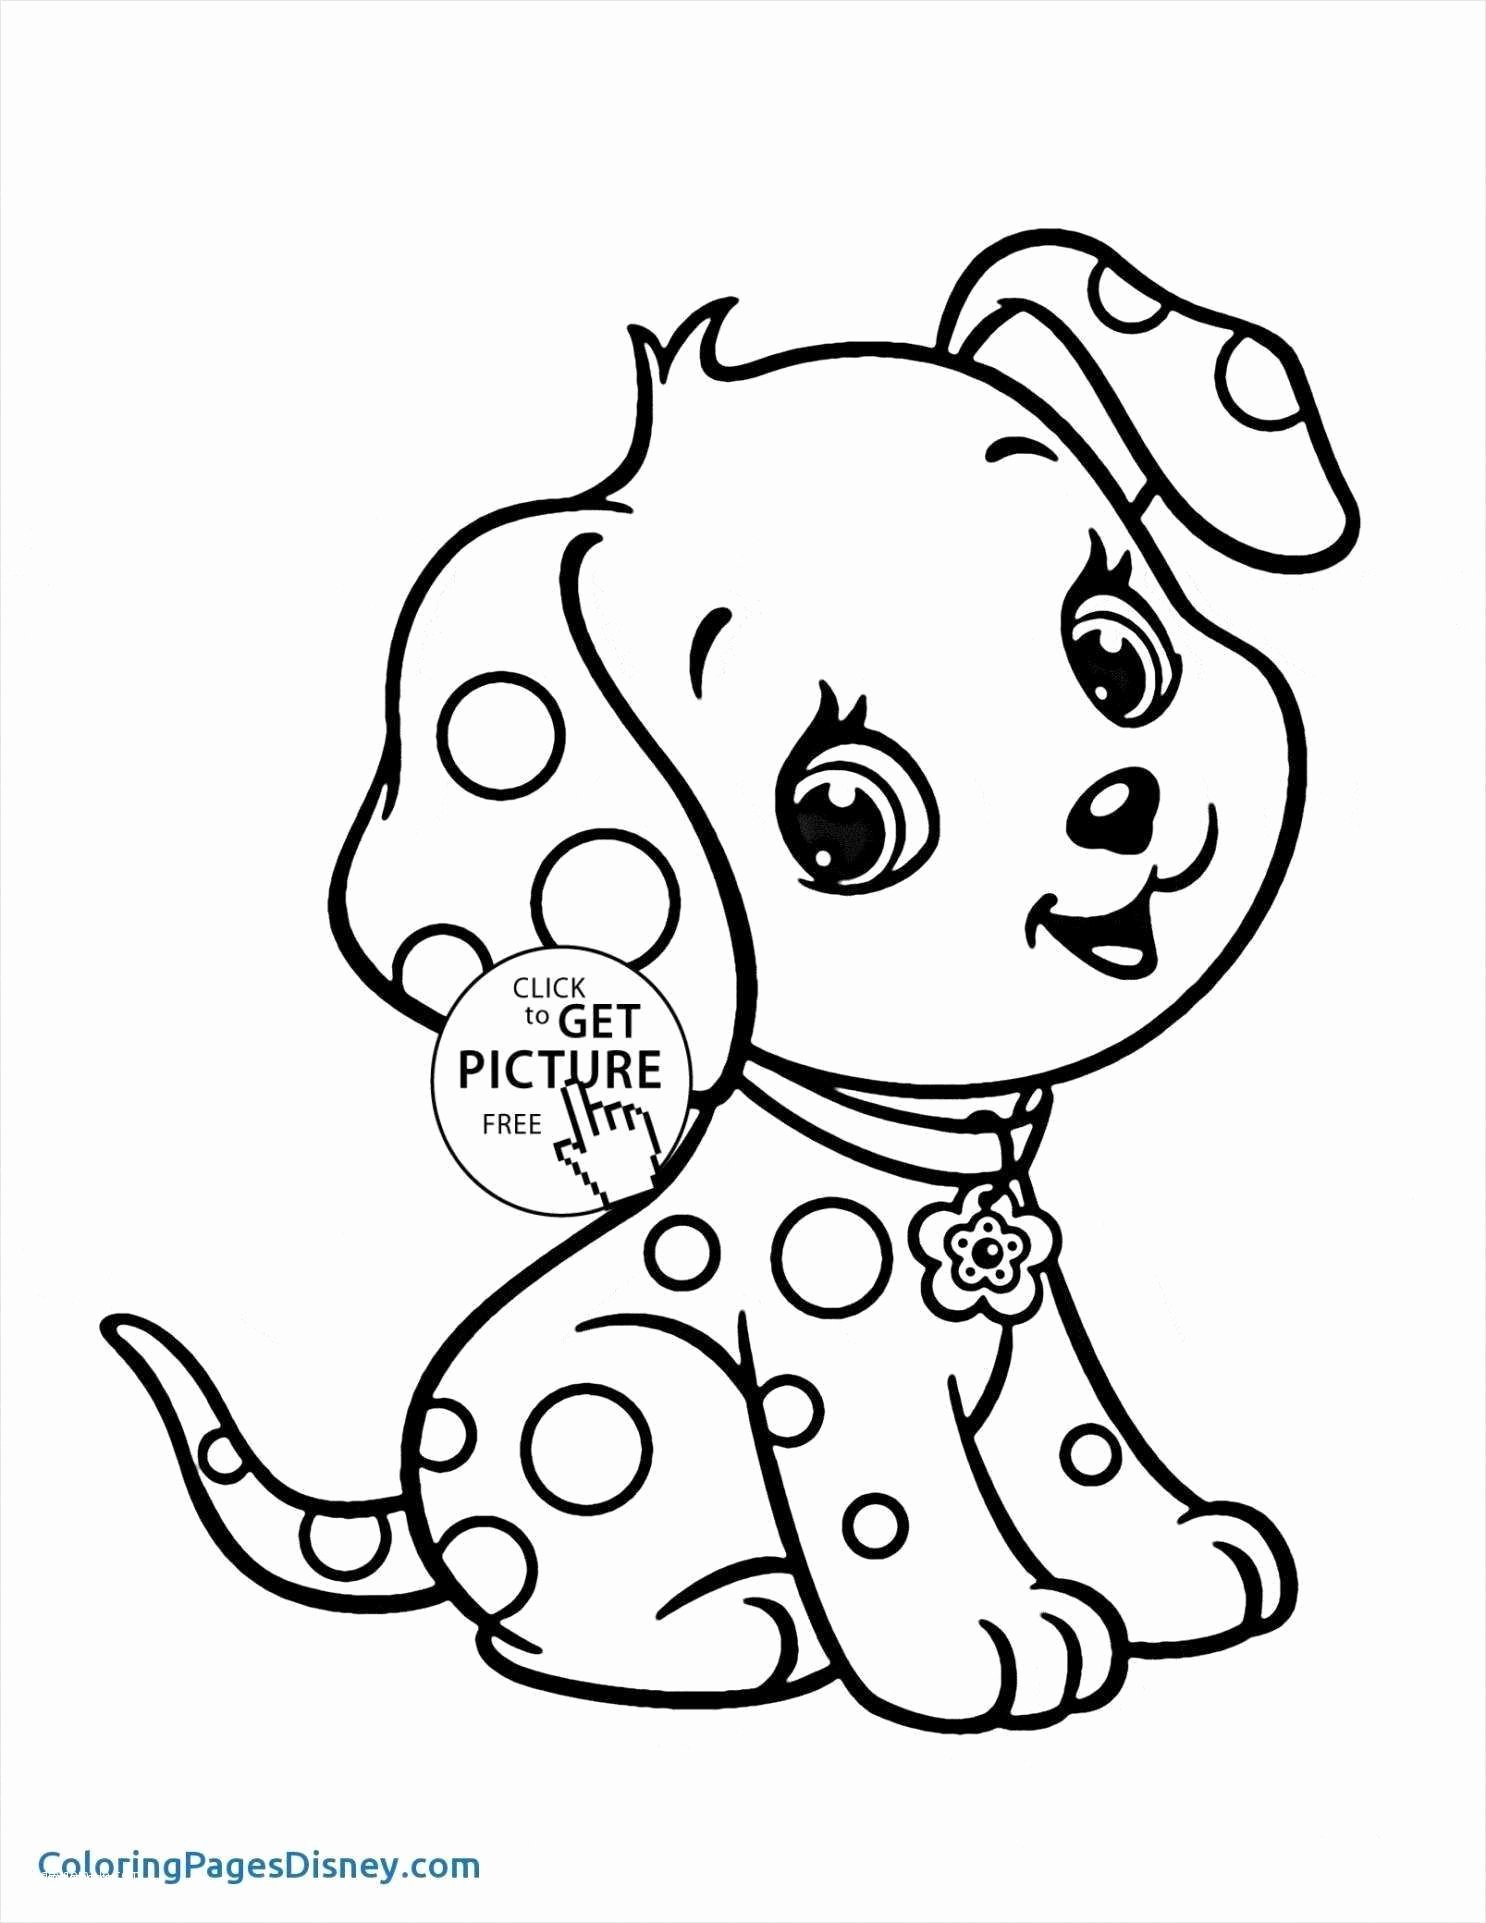 Free Coloring Worksheets for Preschoolers Kids Coloring Book Free Printables for toddlers Haramiran